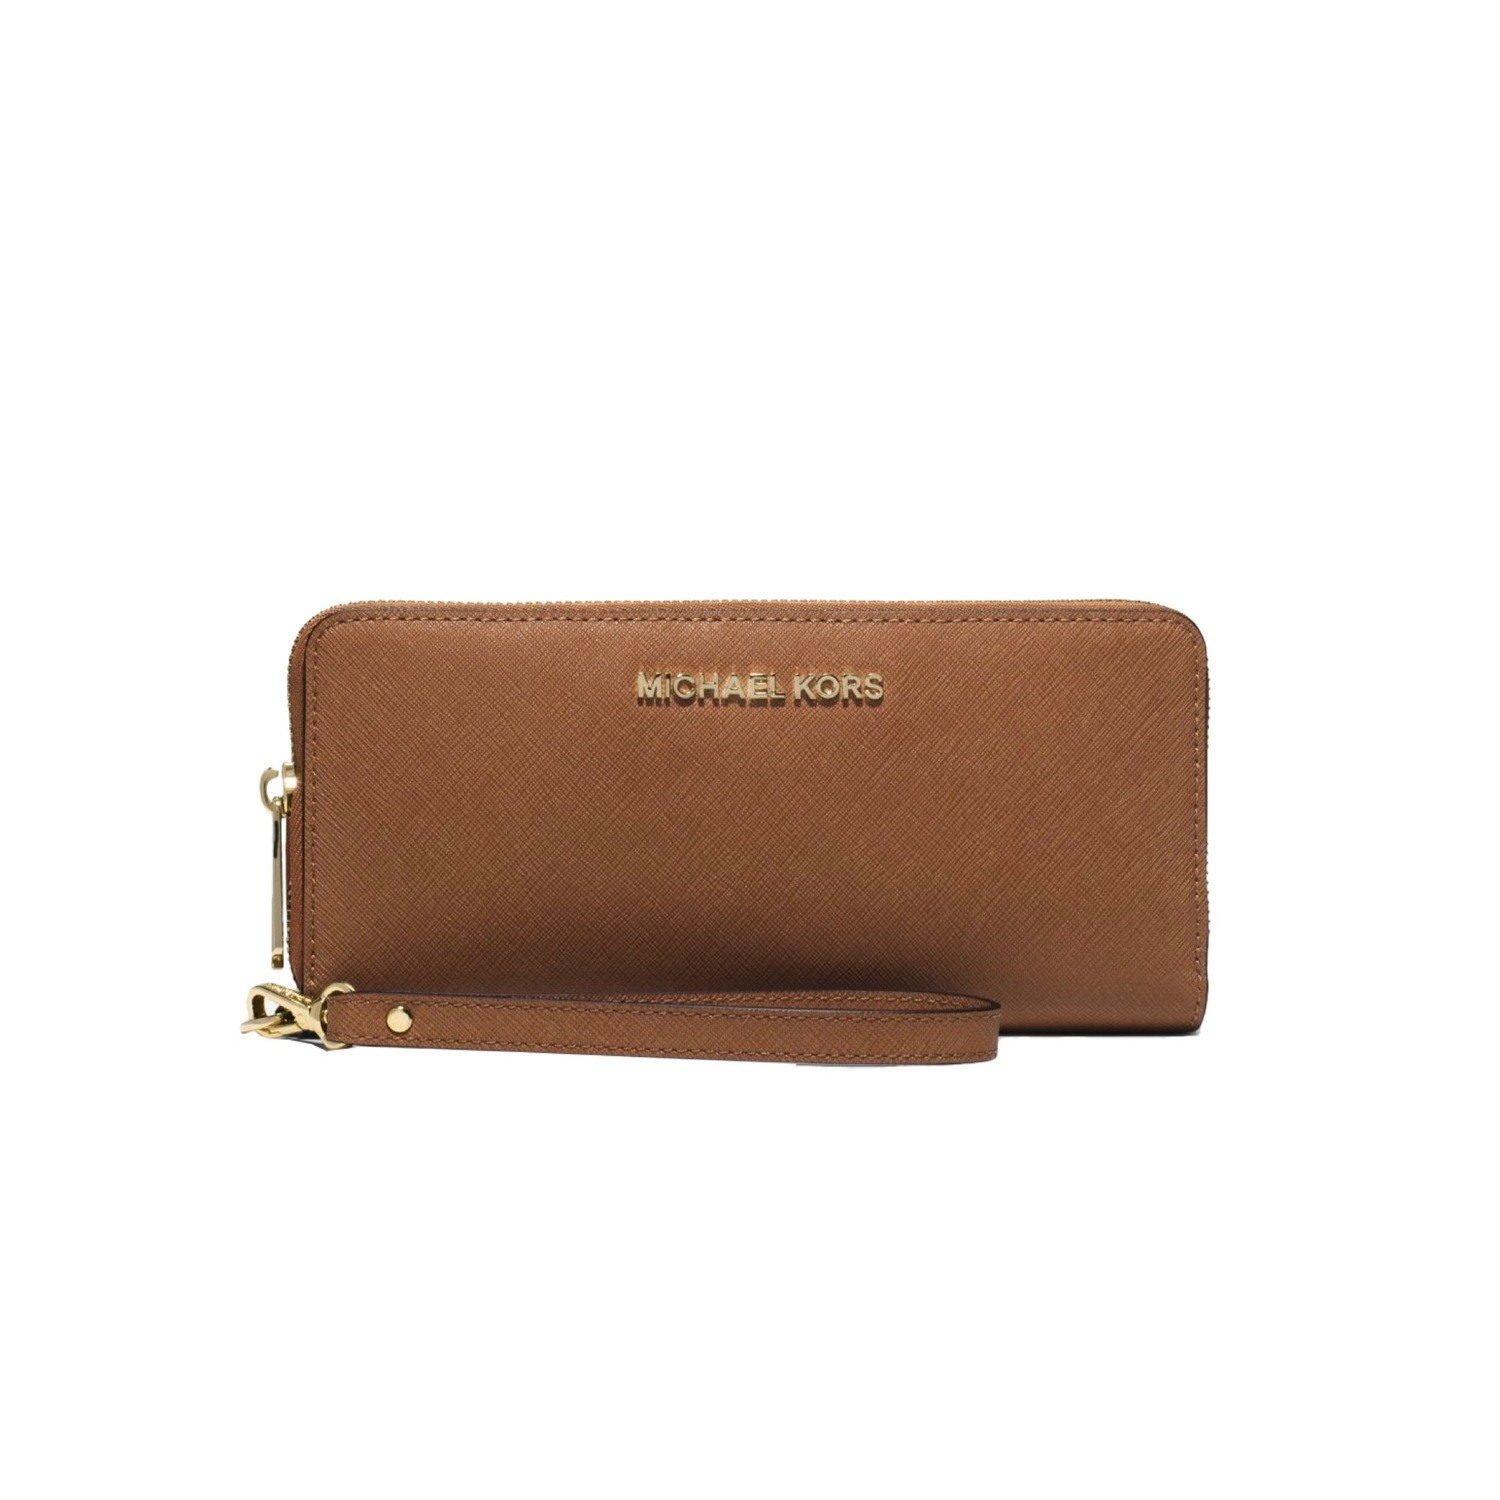 MICHAEL KORS - Jet Set Travel Travel Continental - Acorn